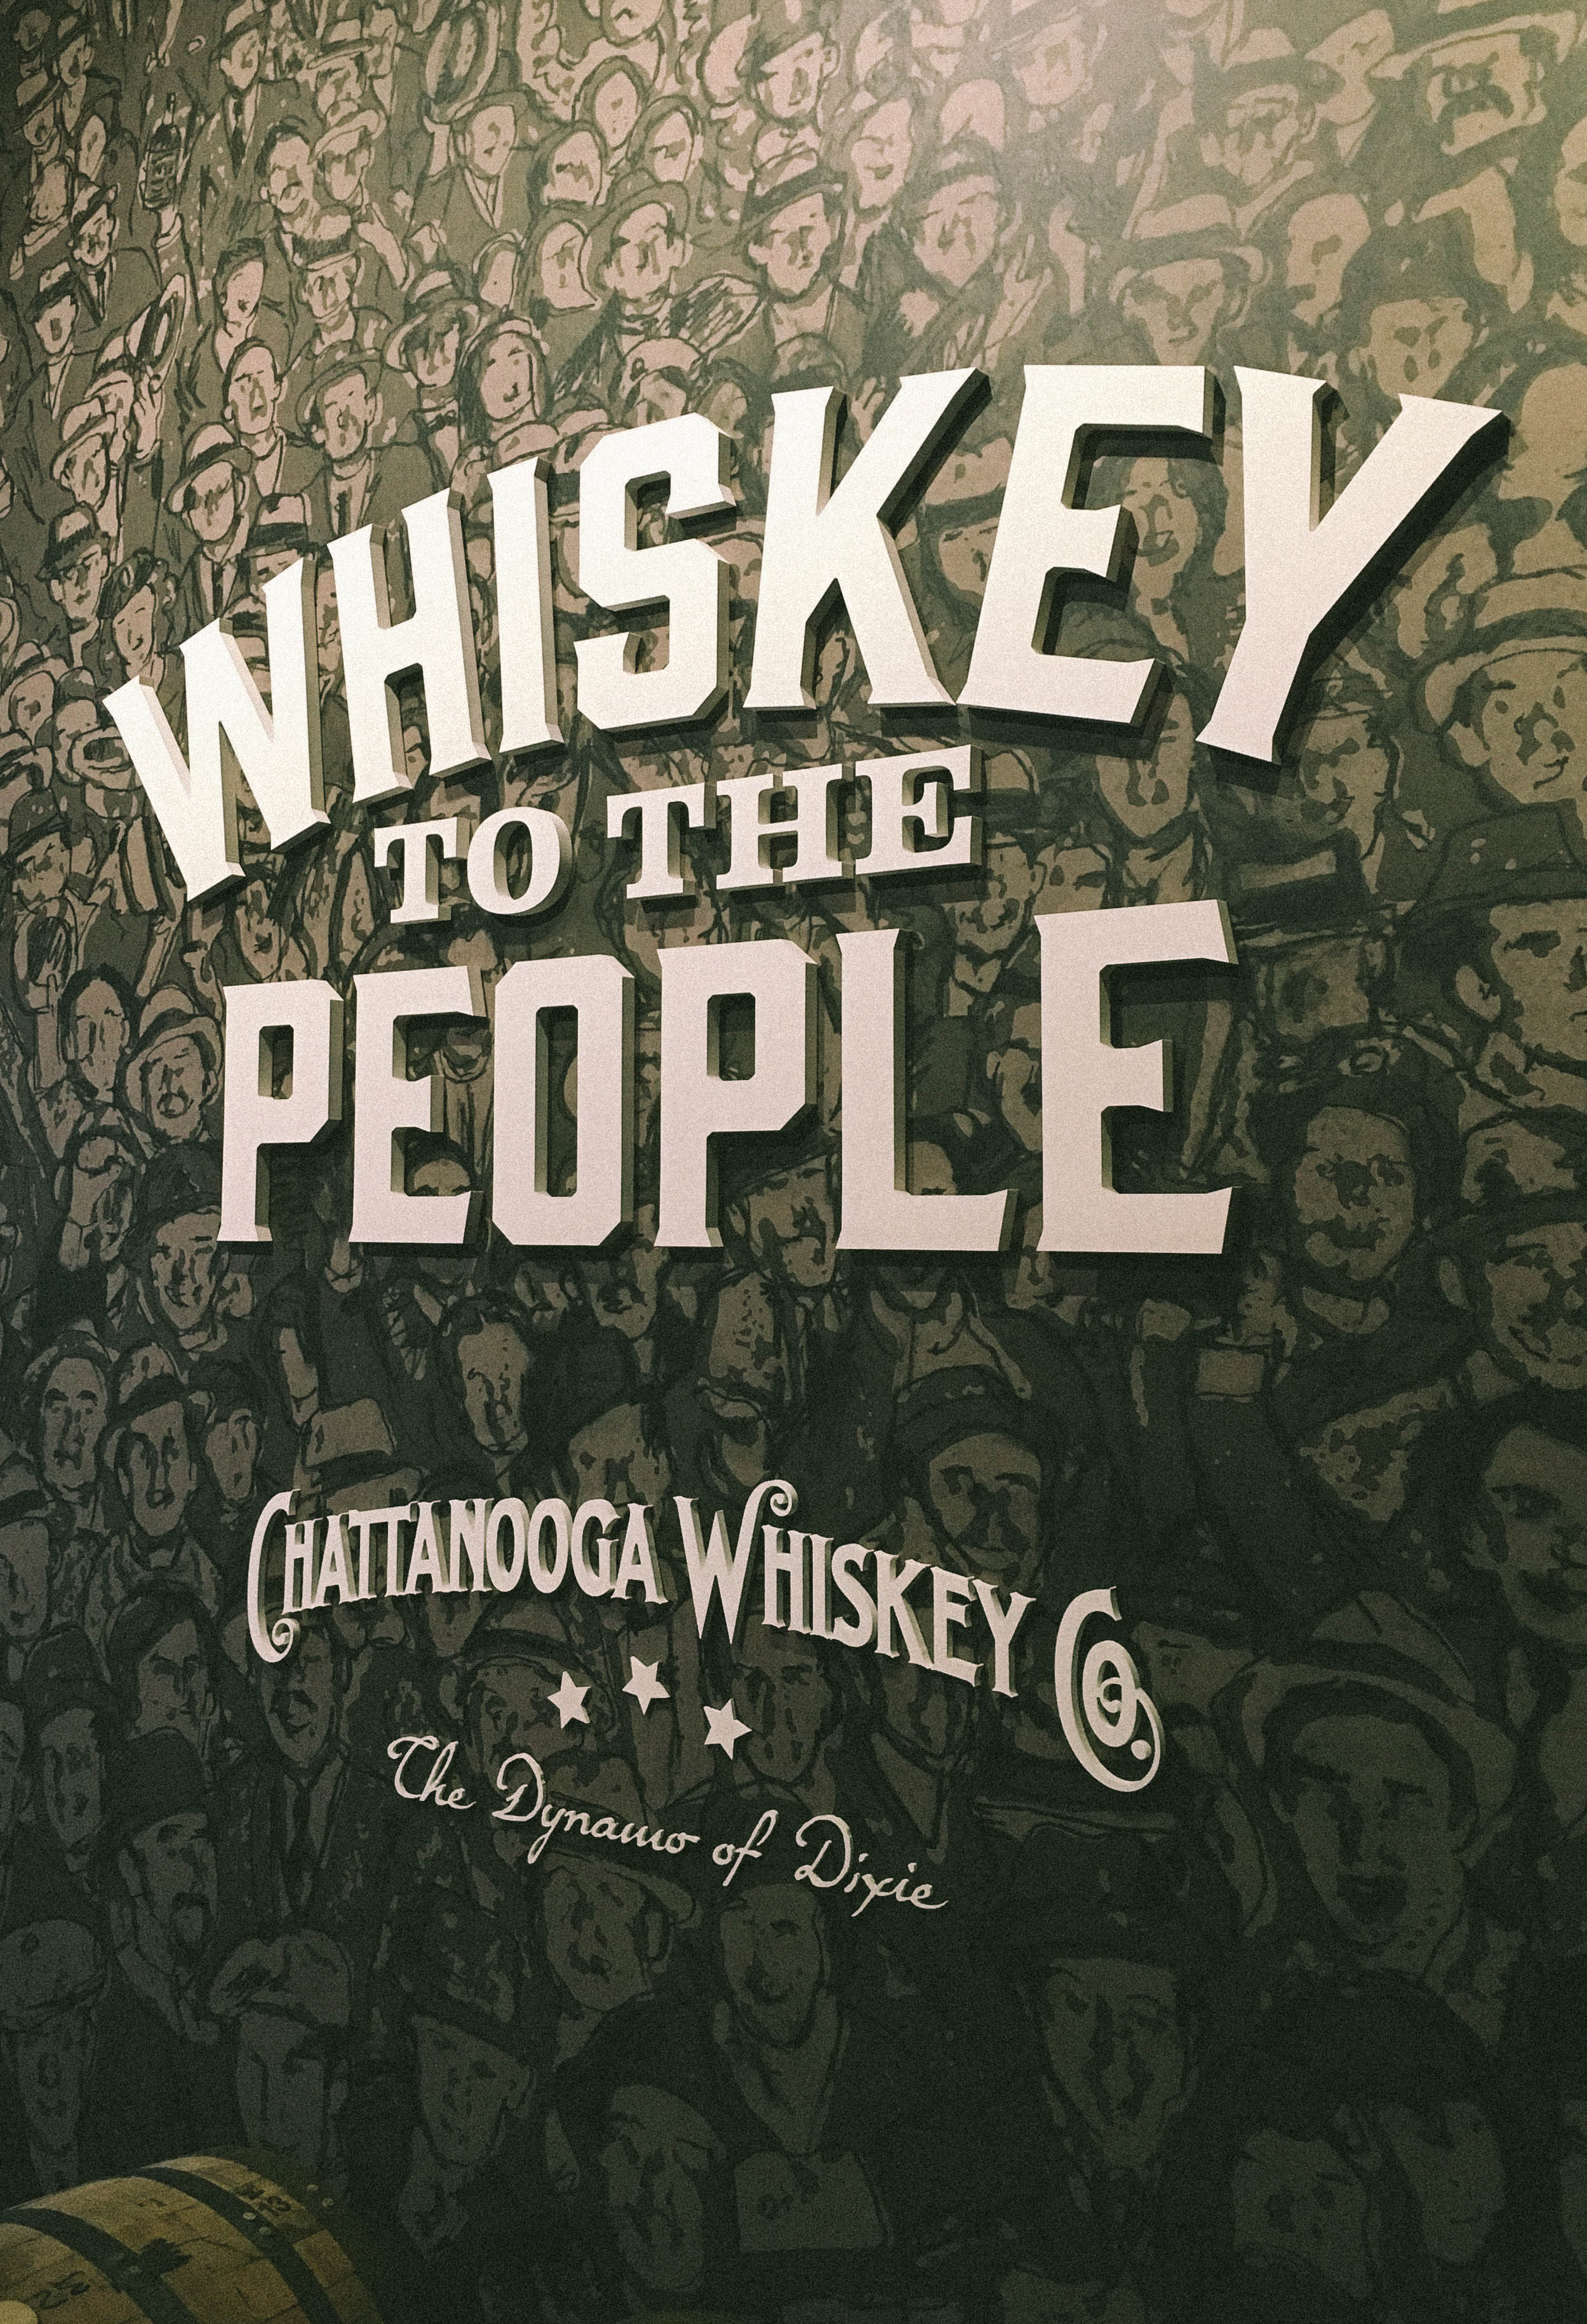 wall_whiskey_to_the_people